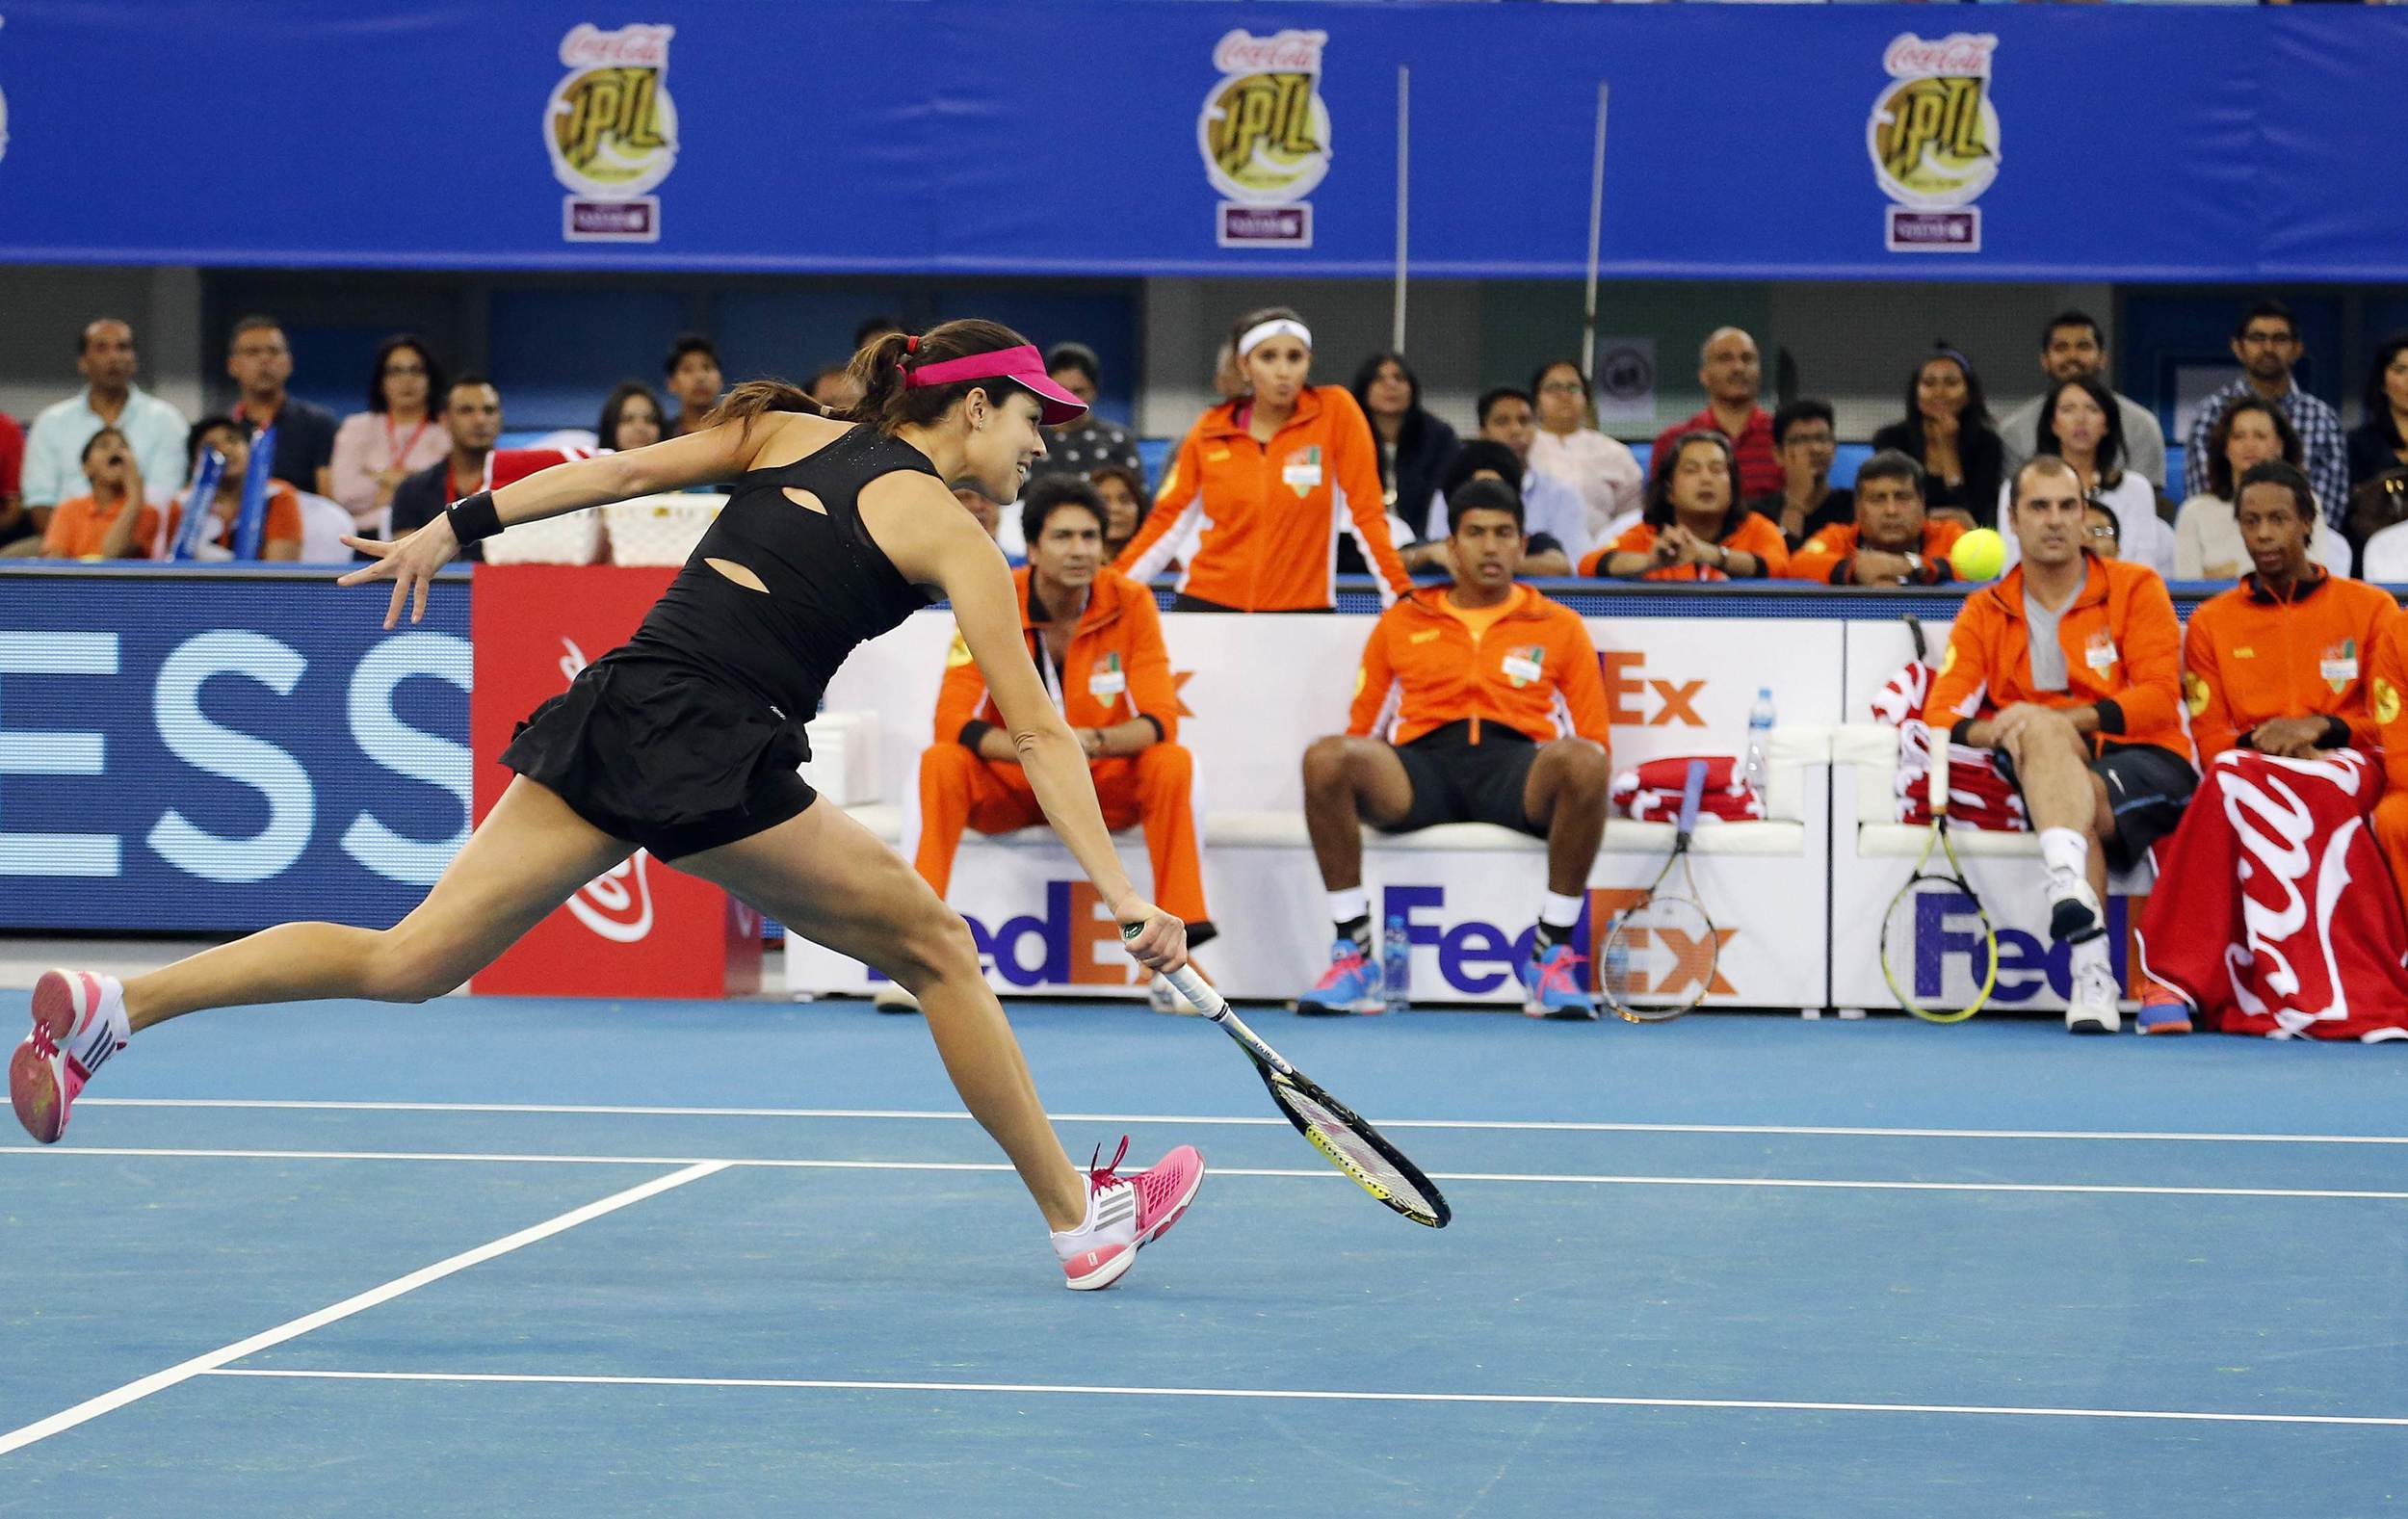 Indian Aces' Ana Ivanovic of Serbia hits a return UAE Royals' Kristina Mladenovic of France during their match at the International Premier Tennis League (IPTL) in Dubai December 13, 2014. Image supplied by Action Images /Ahmed Jadallah